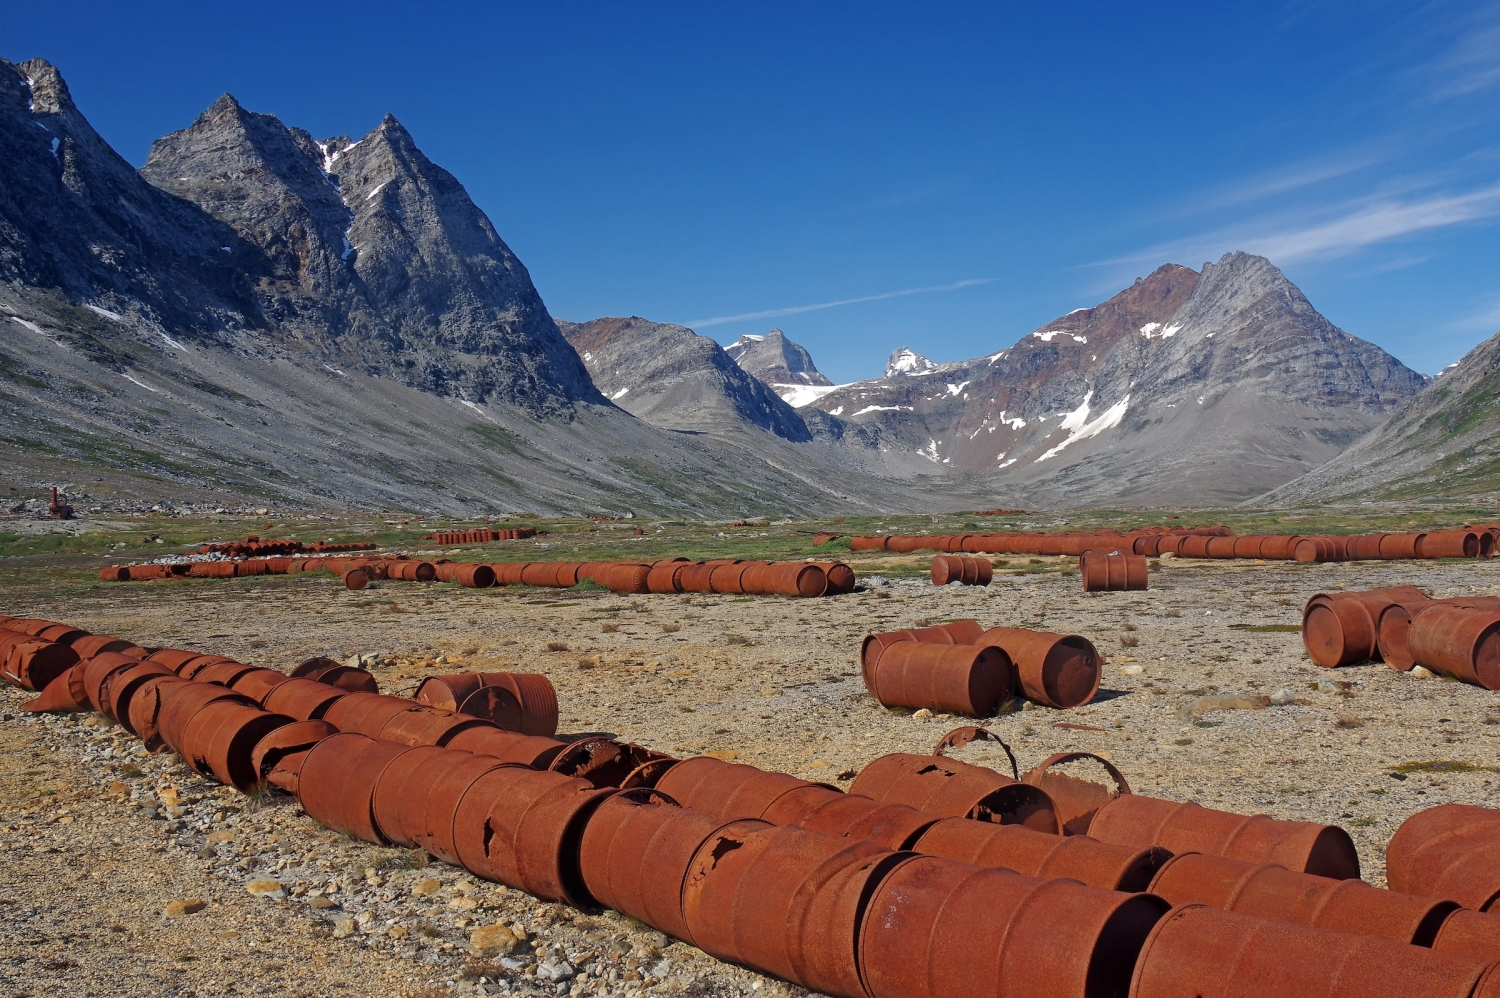 Remains of American WW2 base Bluie East Two at Ikateq, East Greenland. Photo by Reinhard Pantke - Visit Greenland